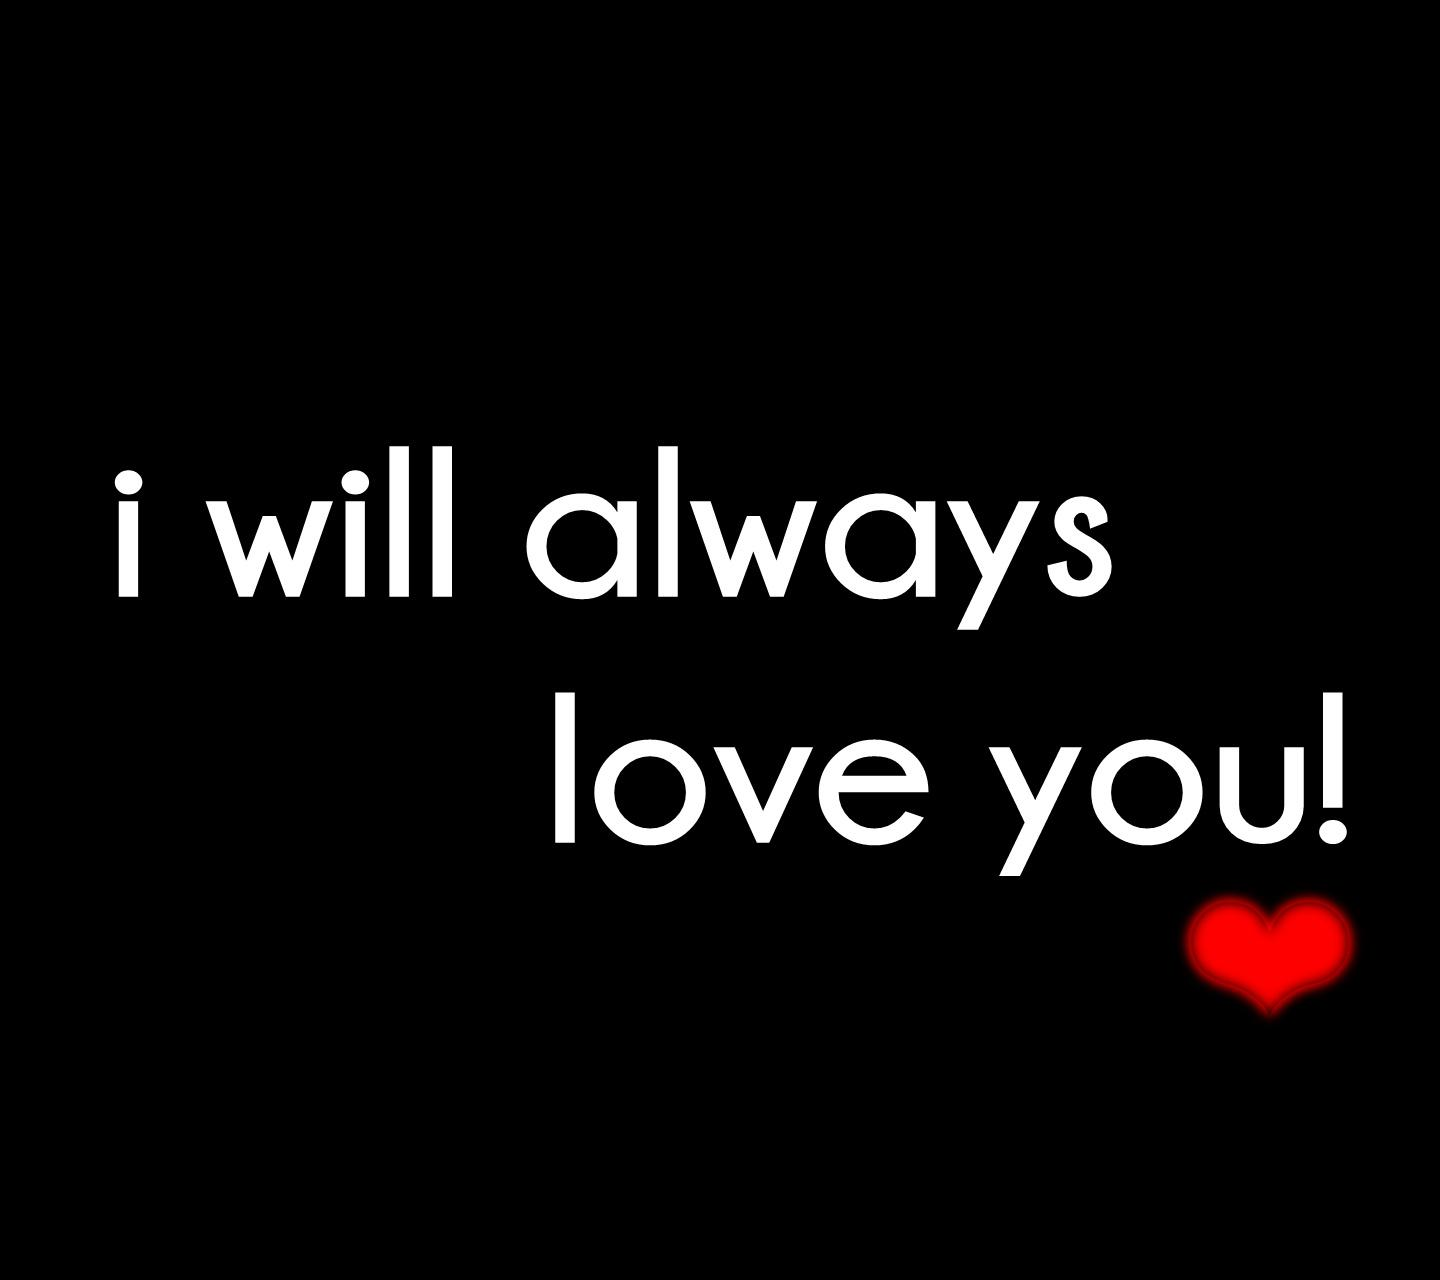 Download Always love you hd wallpaper for laptop - Abstract